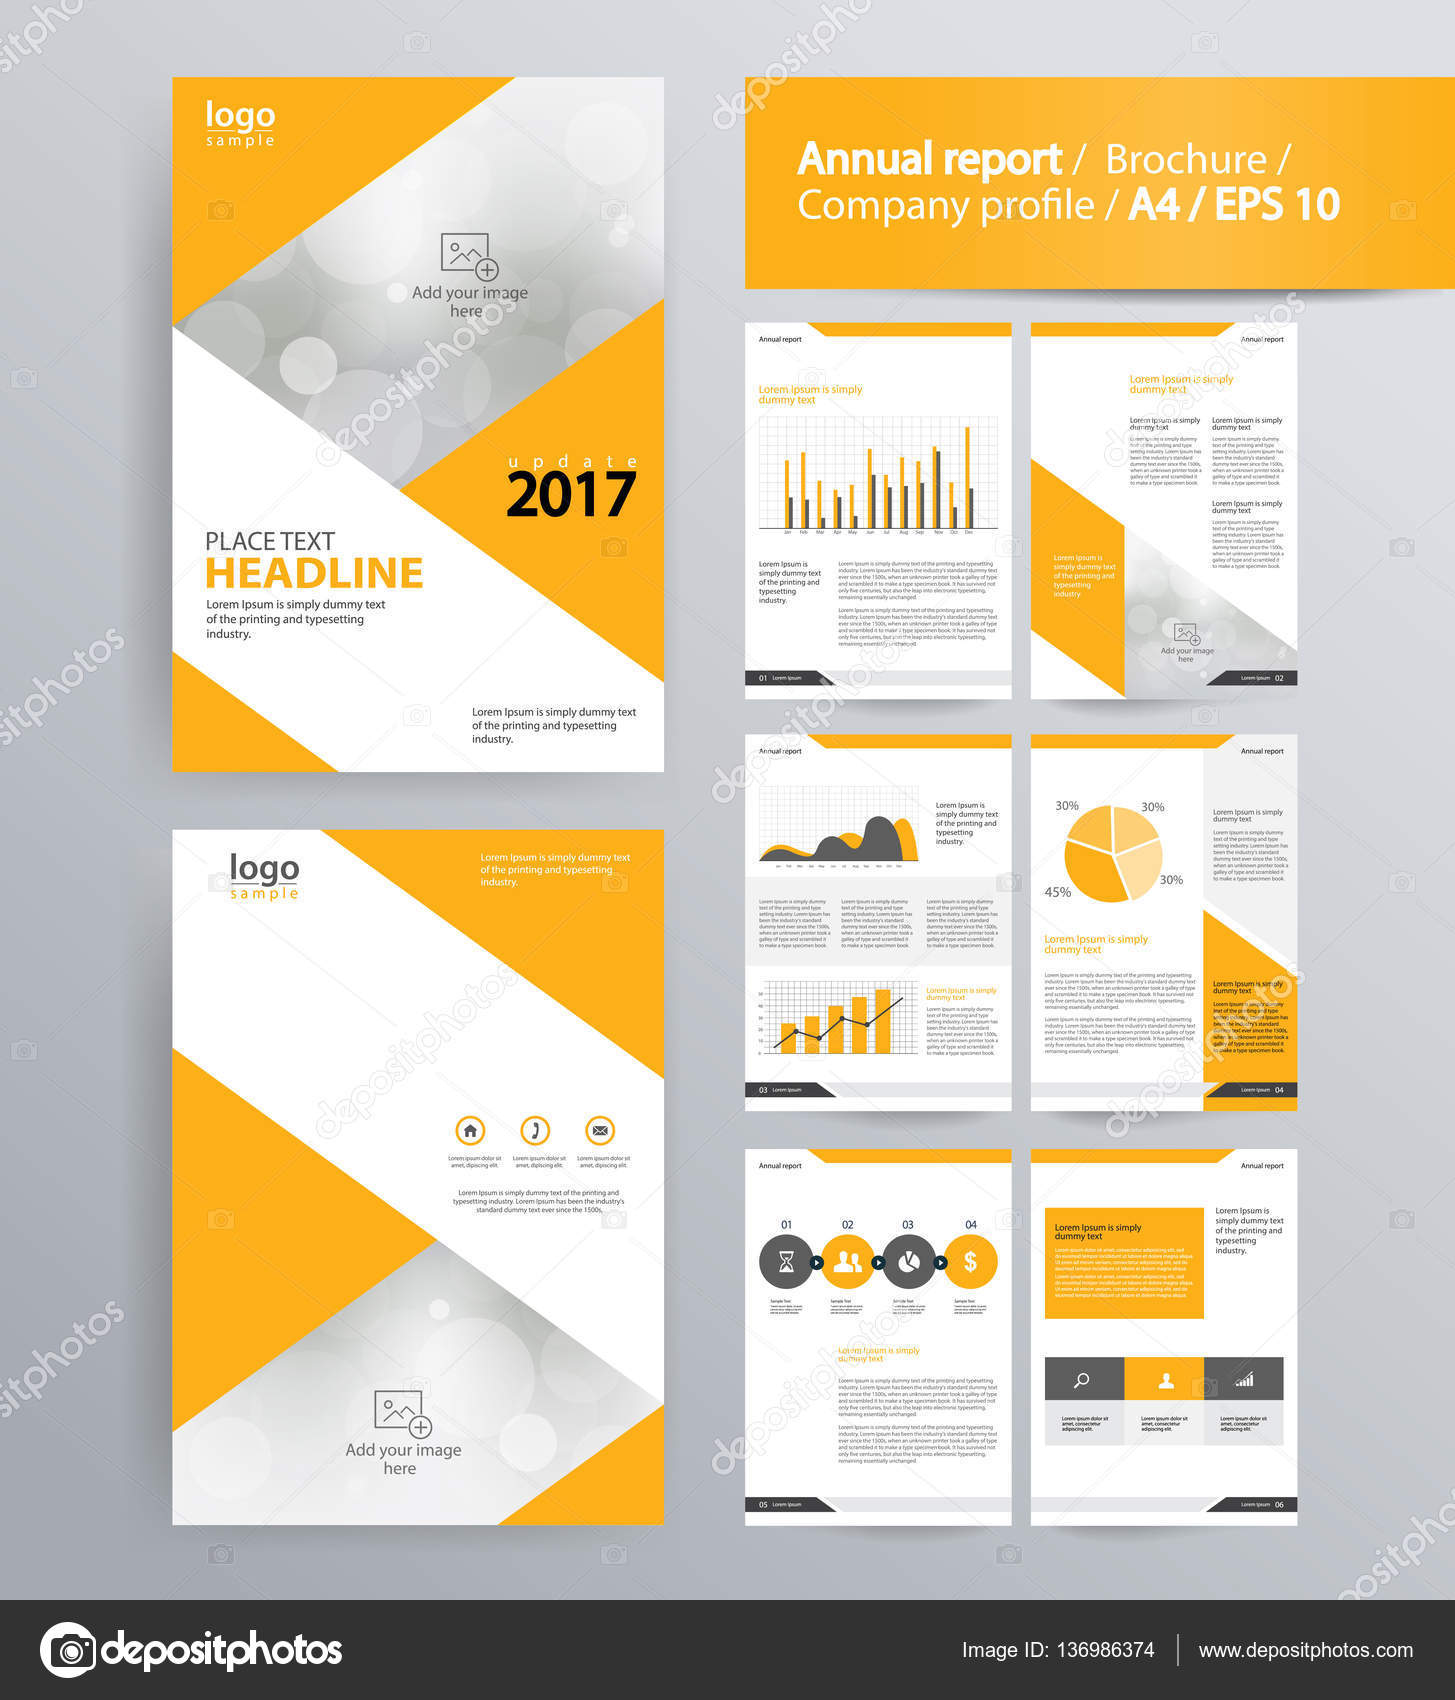 Company Profile Annual Report Brochure And Flyer Layout